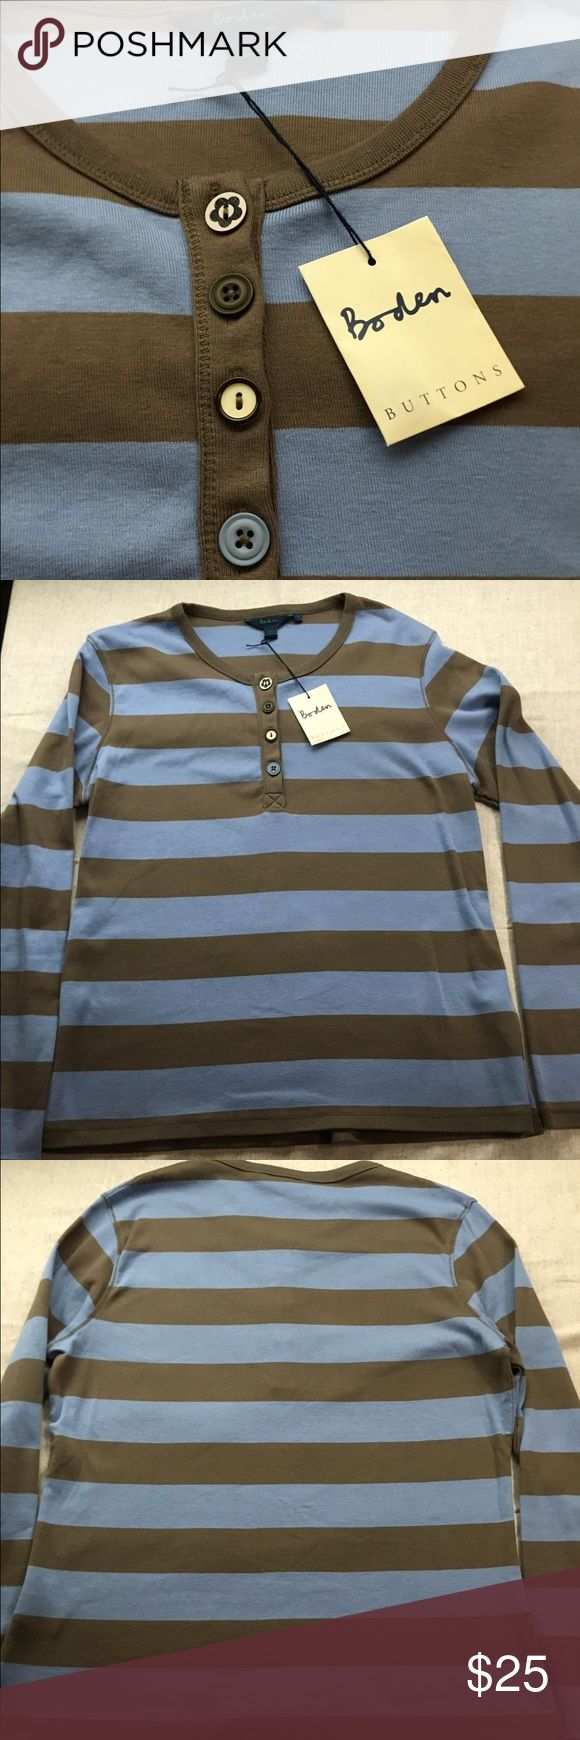 NWT Boden Henley Top NWT BODEN Henley top! Cute buttons green and blue stripes Boden Tops Tees - Long Sleeve